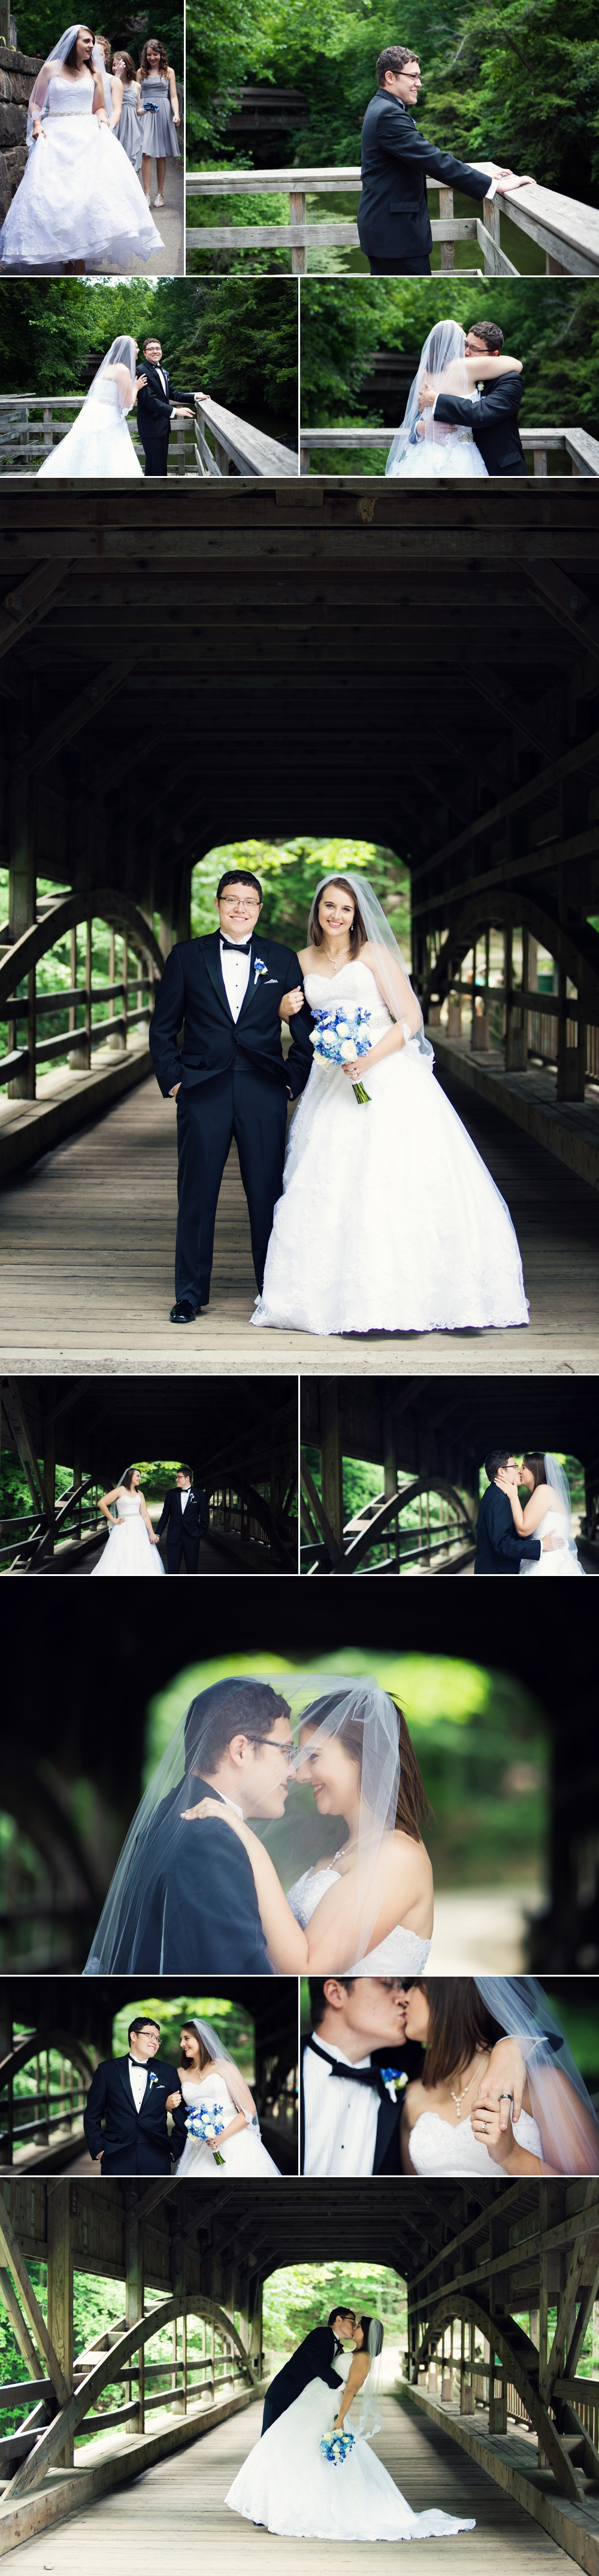 youngstown-wedding-photographer-1